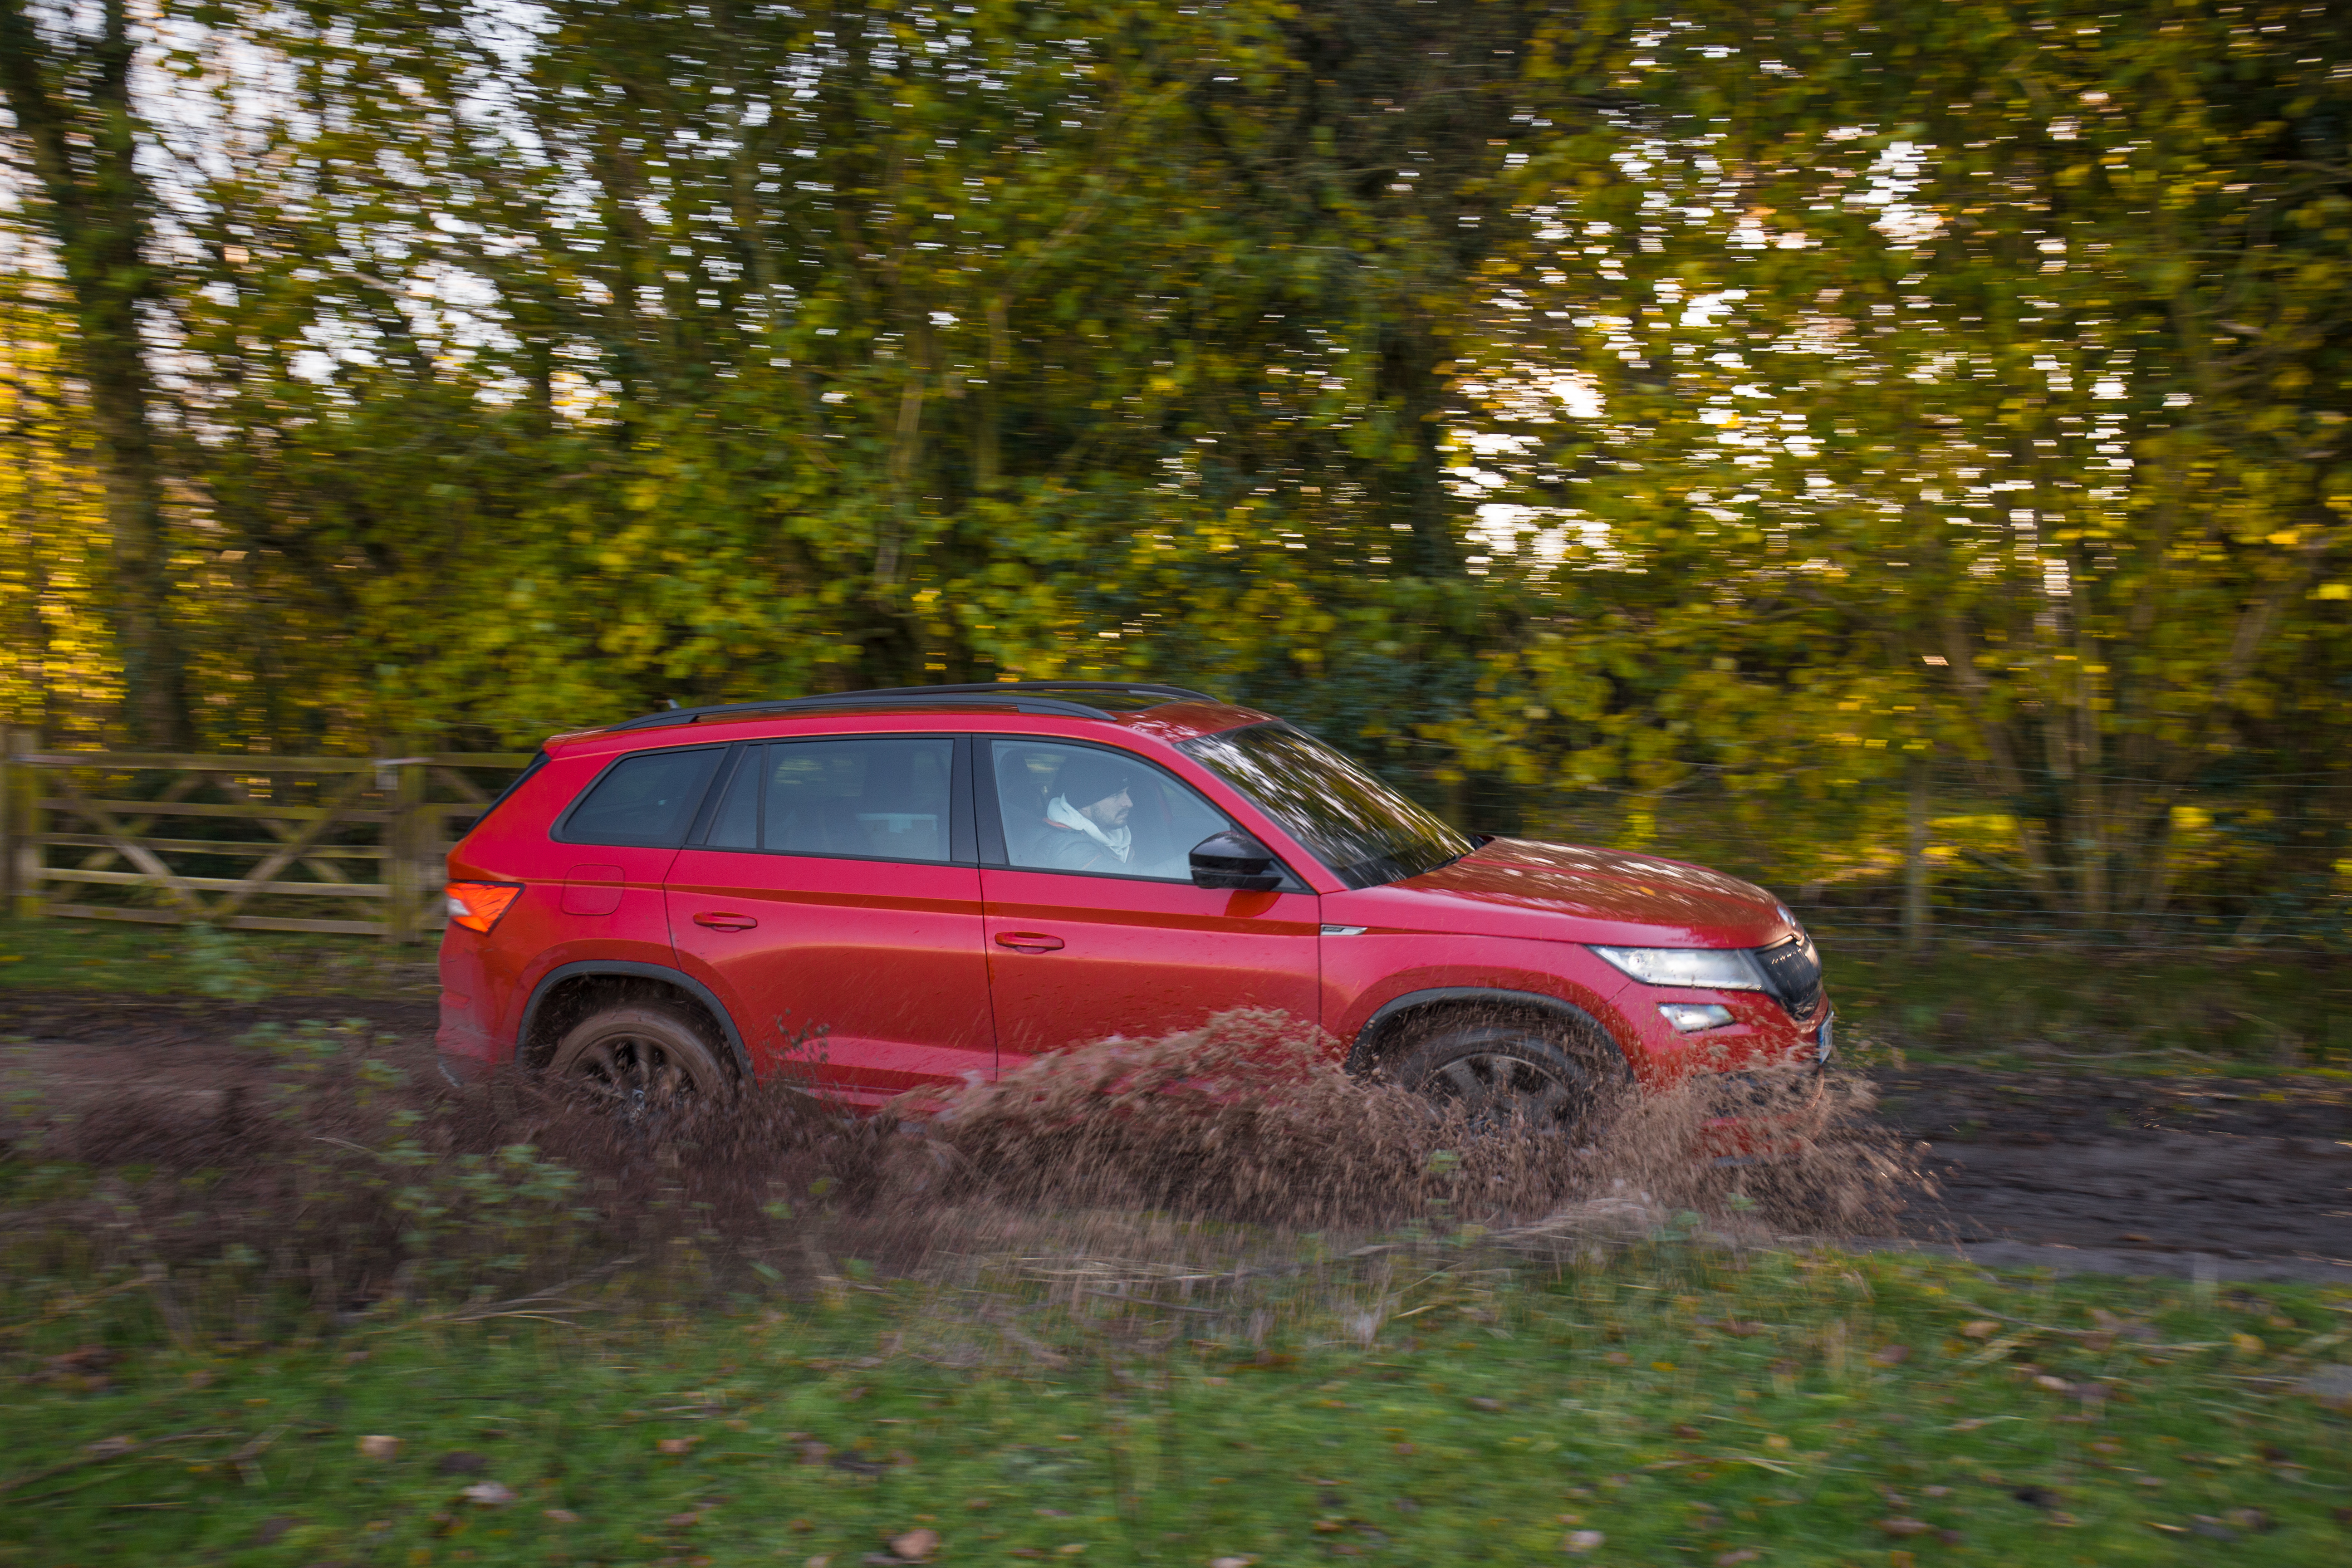 Even muddy lanes are no match for the Kodiaq